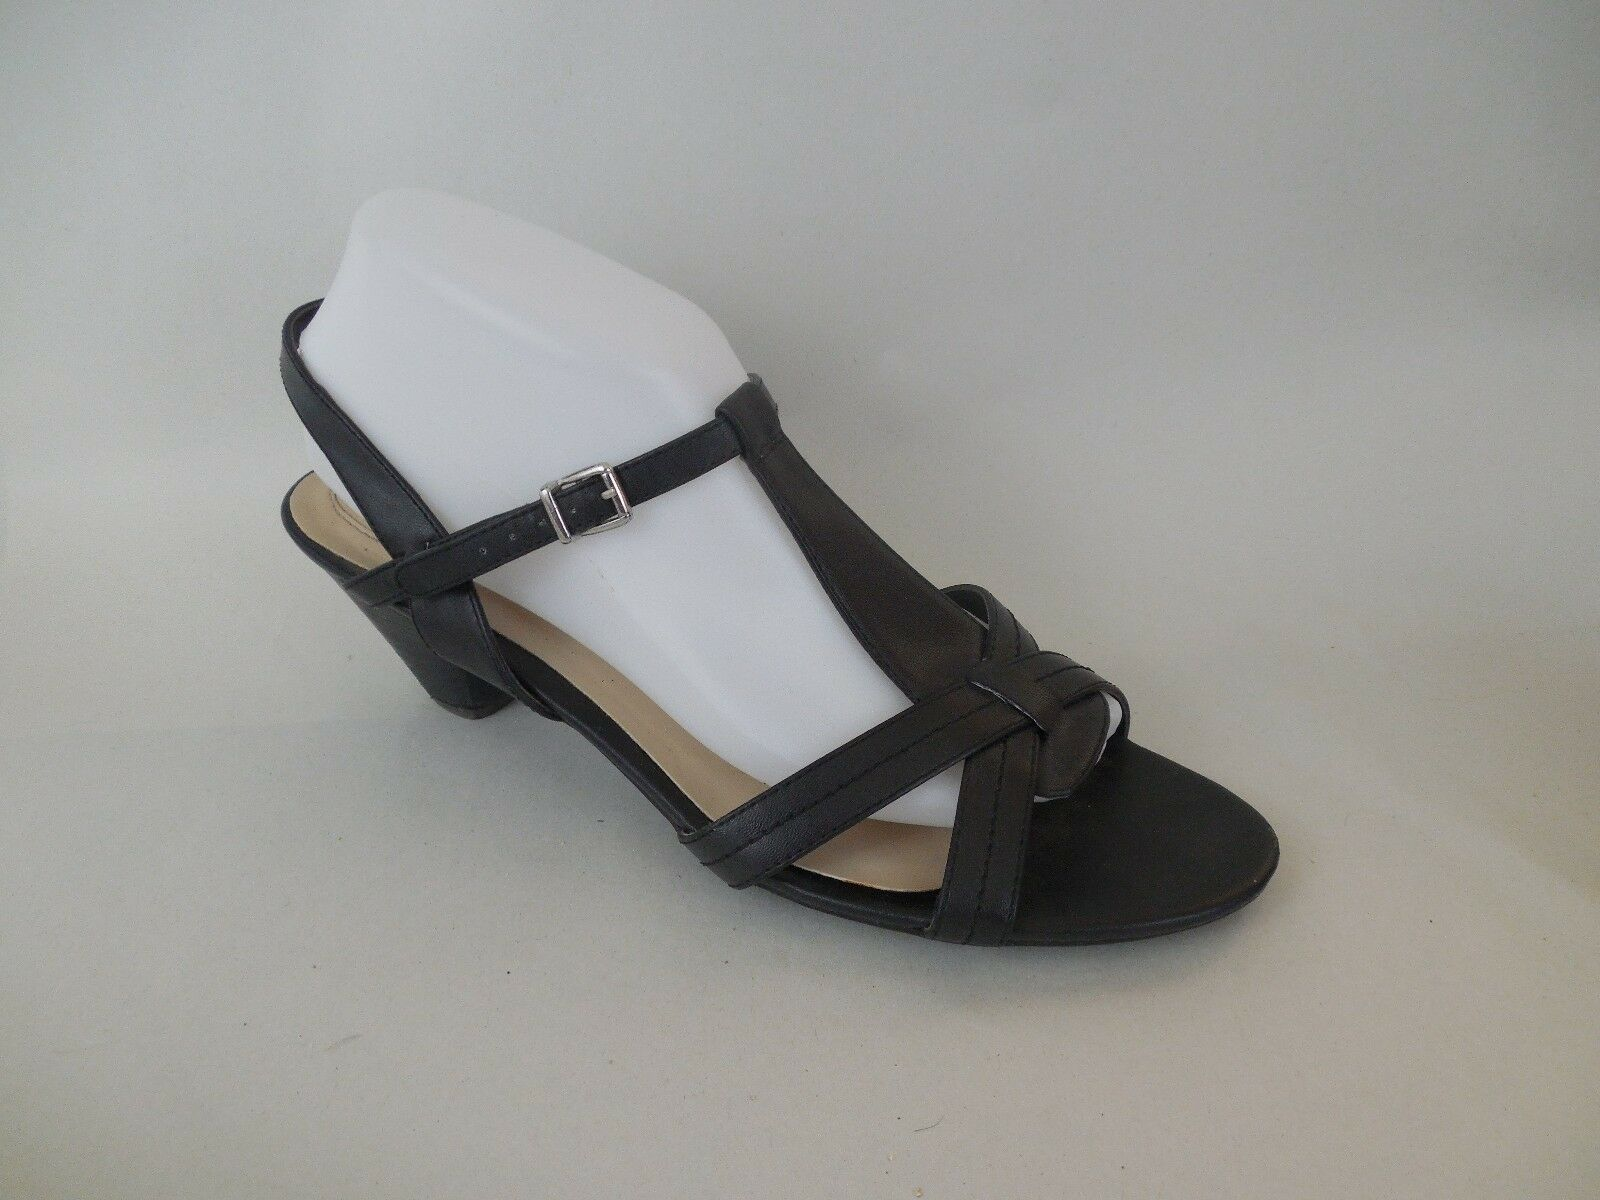 NICKELS CLAUDIA Black Strappy Sandals 2 Heel Comfort Sole Size 10 M Ankle Strap